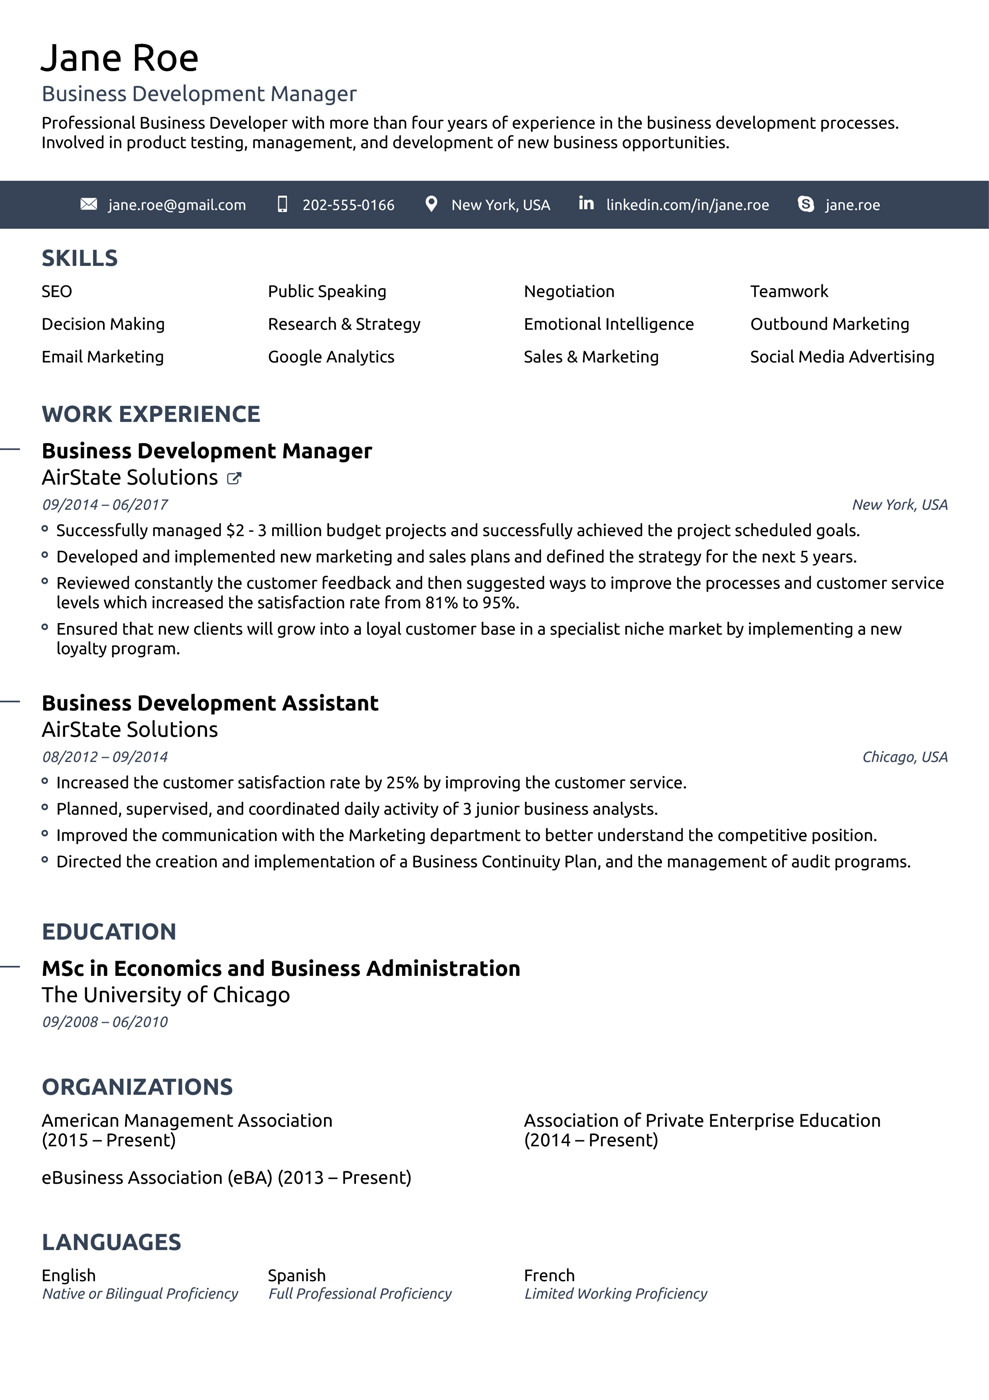 best resume file type for 2020